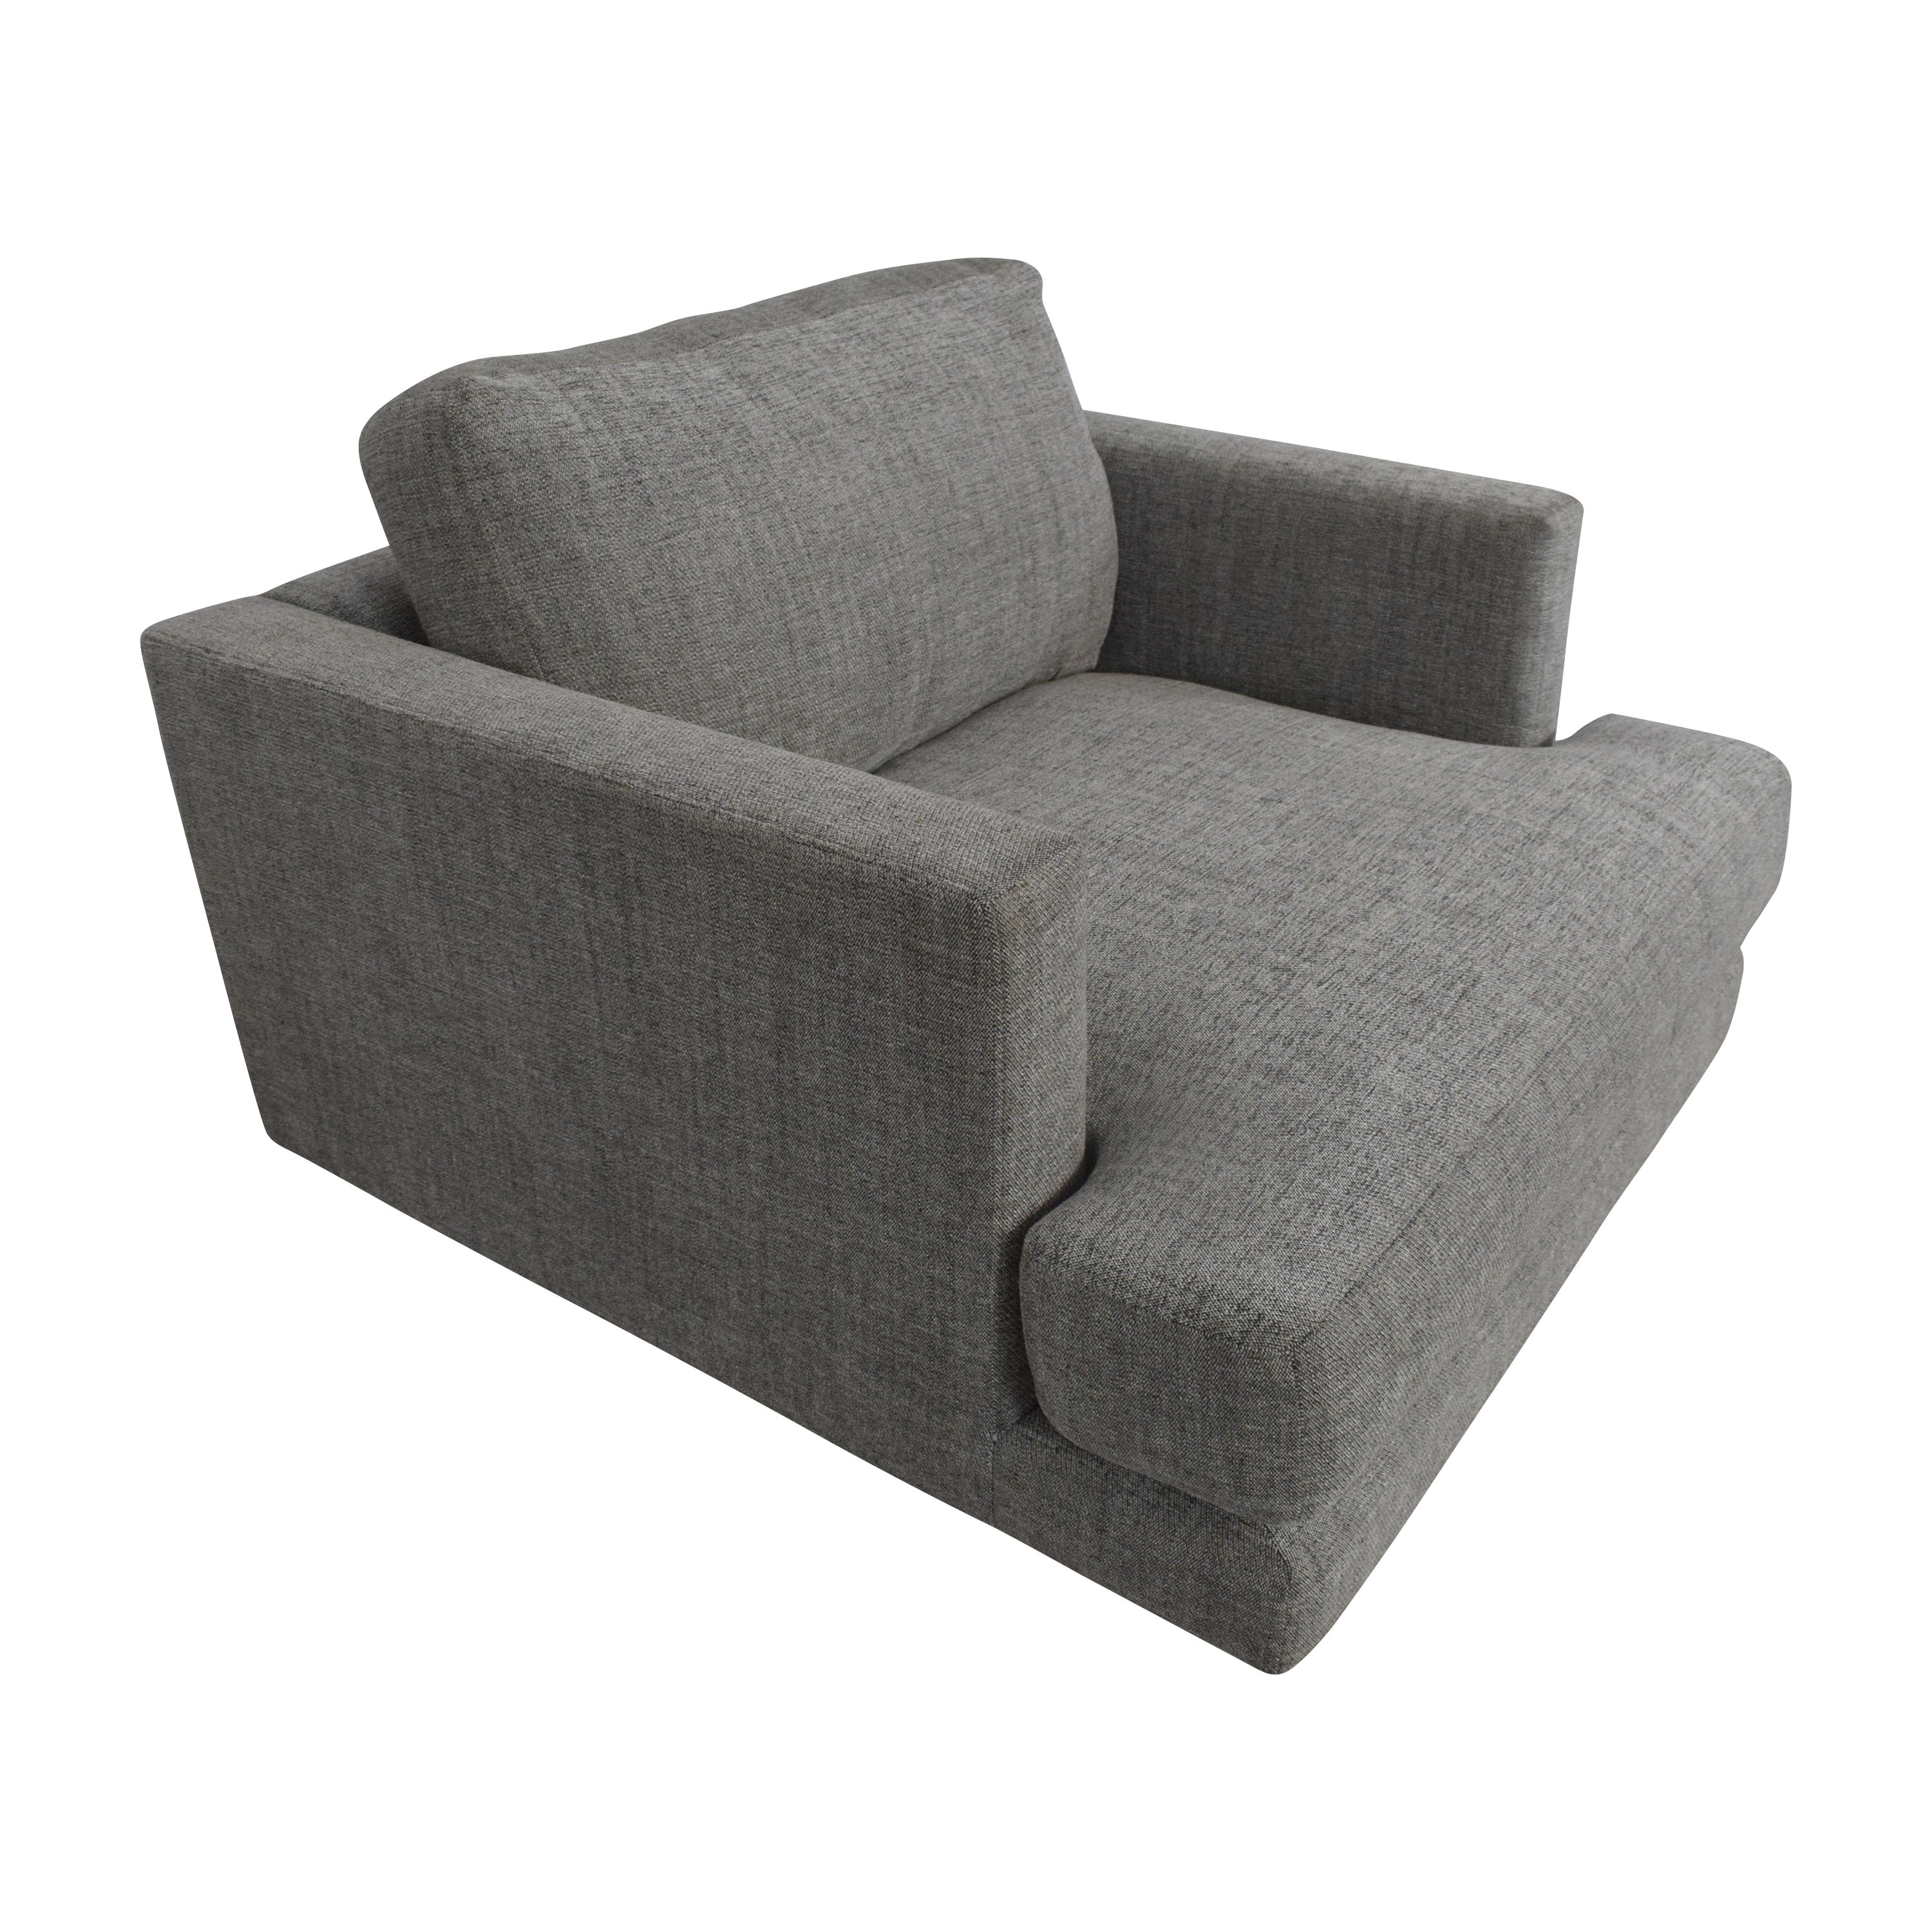 Knoll Knoll D'Urso Contract Lounge Chair coupon